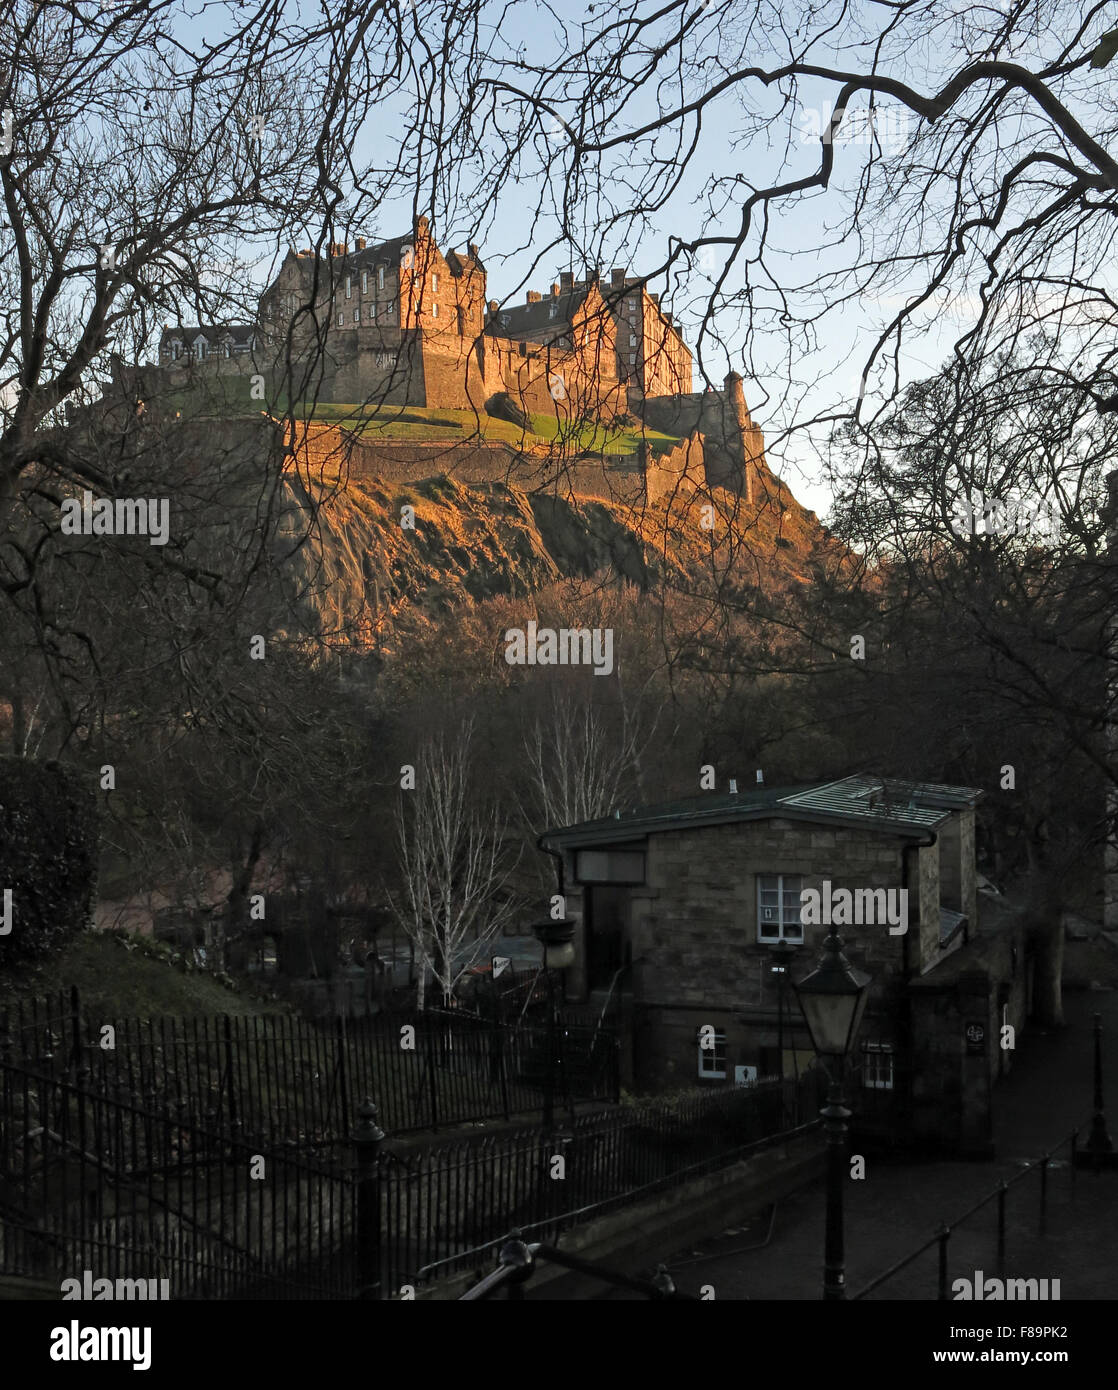 United,Kingdom,city,centre,center,history,historic,seat,of,power,autumn,December,Xmas,Christmas,through,trees,tree,saint,United,Kingdom,Cuthberts,graveyard,grave,yard,cemetery,sunset,sun,set,sunny,blue,sky,Edinburgh Castle,in Winter,Blue sky,GotonySmith,hilltop,historic,history,historical,icon,iconic,kingdom,landmark,landmarks,lowlands,lothian,medieval,monument,old,outcrop,rock,rocky,Royal,family,scotch,scotland,scots,scottish,sight,sights,scenic,sightseeing,skies,sky,skyline,summer,sun,sunny,sunshine,stronghold,tour,tattoo,tourism,tourists,town,towns,towering,uk,united,white,unesco world heritage,Unesco,old town,Edinburgh Castle,dramatic sky,moody,mody sky,dramatic sky,summer,blue,blue sky,lush,green,trees,vegetation,clouds,Edinburg,Castel,Scots,Scottish,scotland,nationalistic,stone,tour,travel,tourist,attraction,Royal Family,buy pictures of Edinburgh,Buy Pictures of,Buy Images Of,Edinburgh Castle